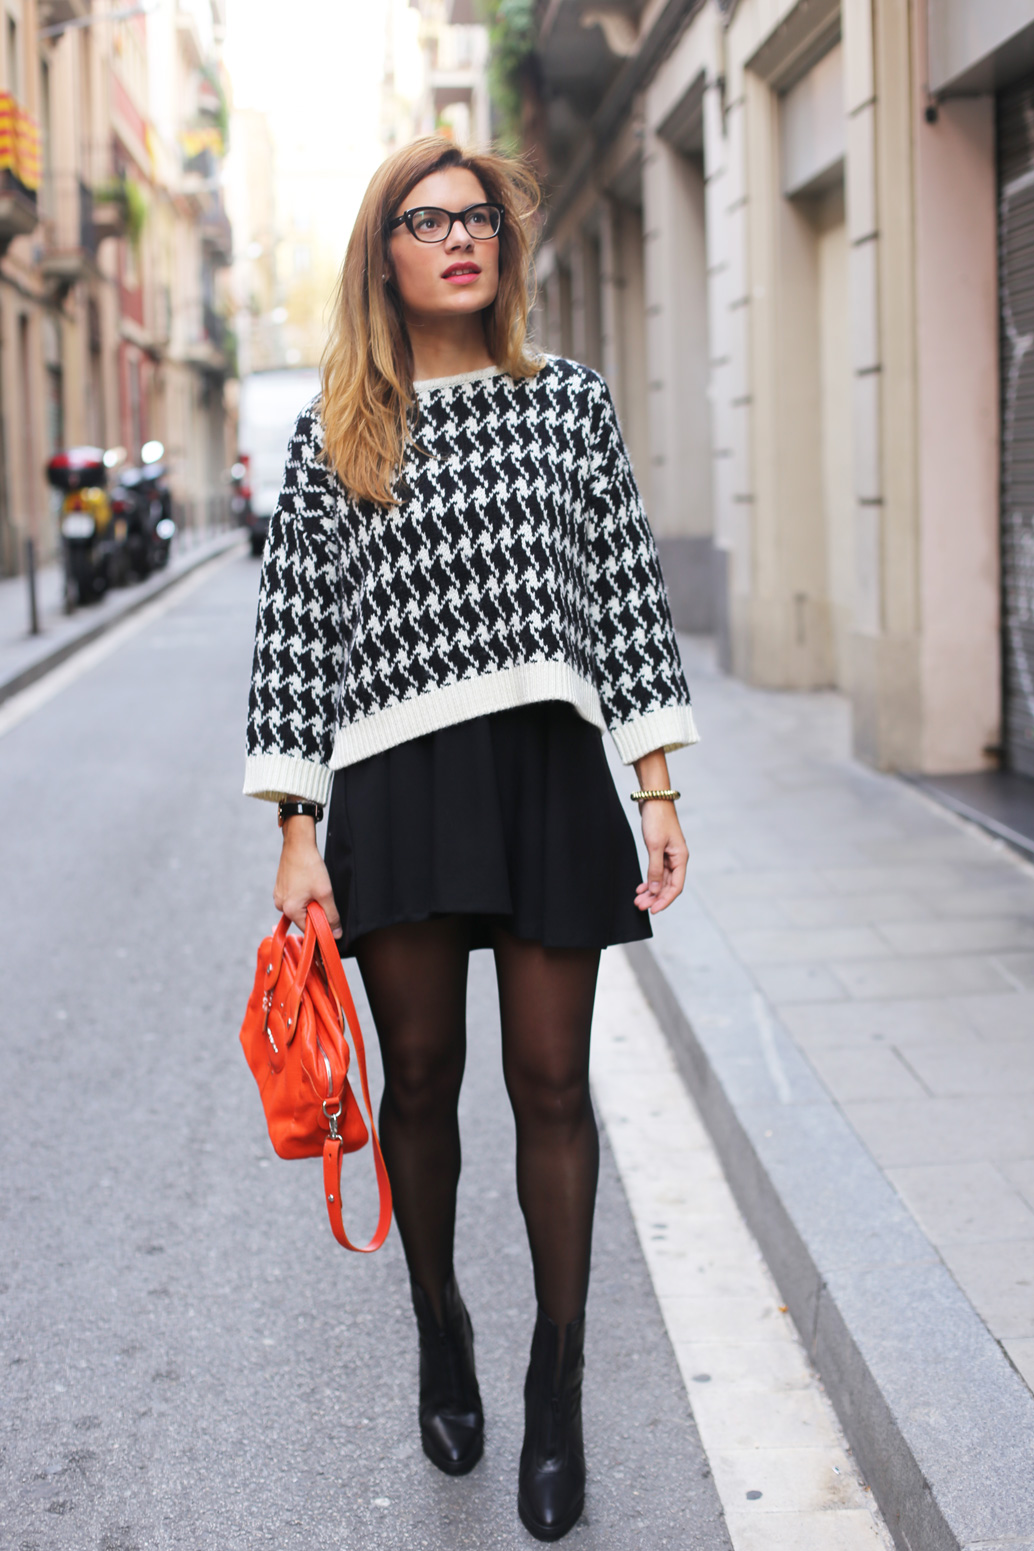 Escorpion-sweater_black-and-white-outfit